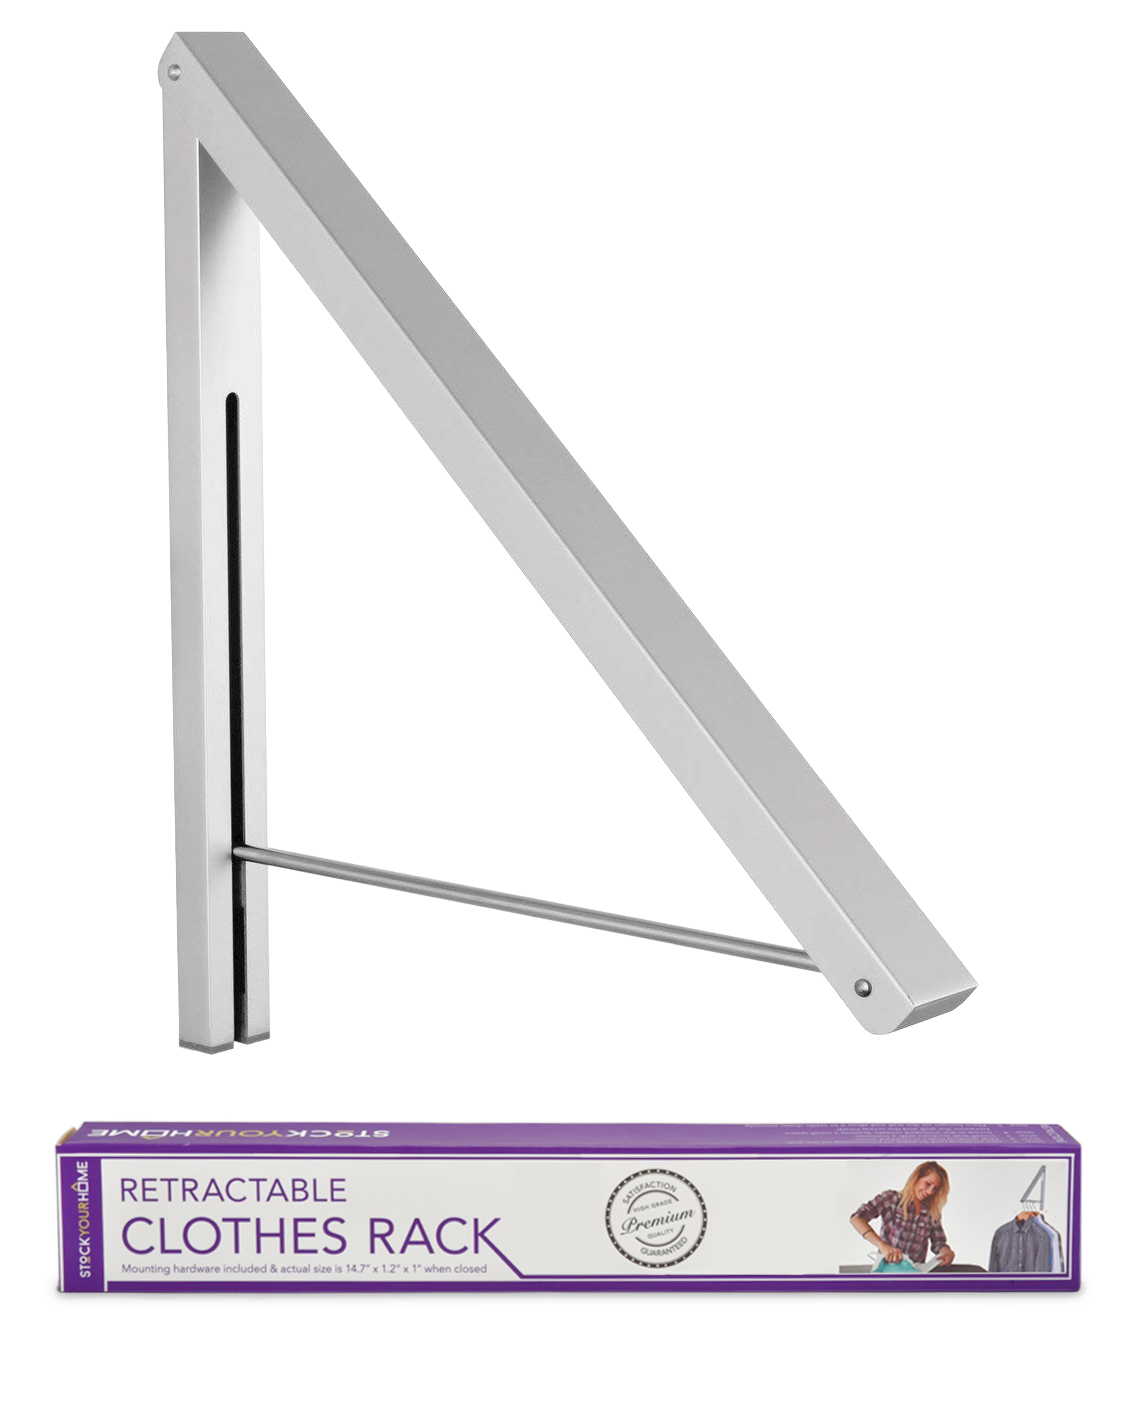 stock your home retractable clothes rack wall mounted folding clothes hanger drying rack for laundry room closet storage organization aluminum